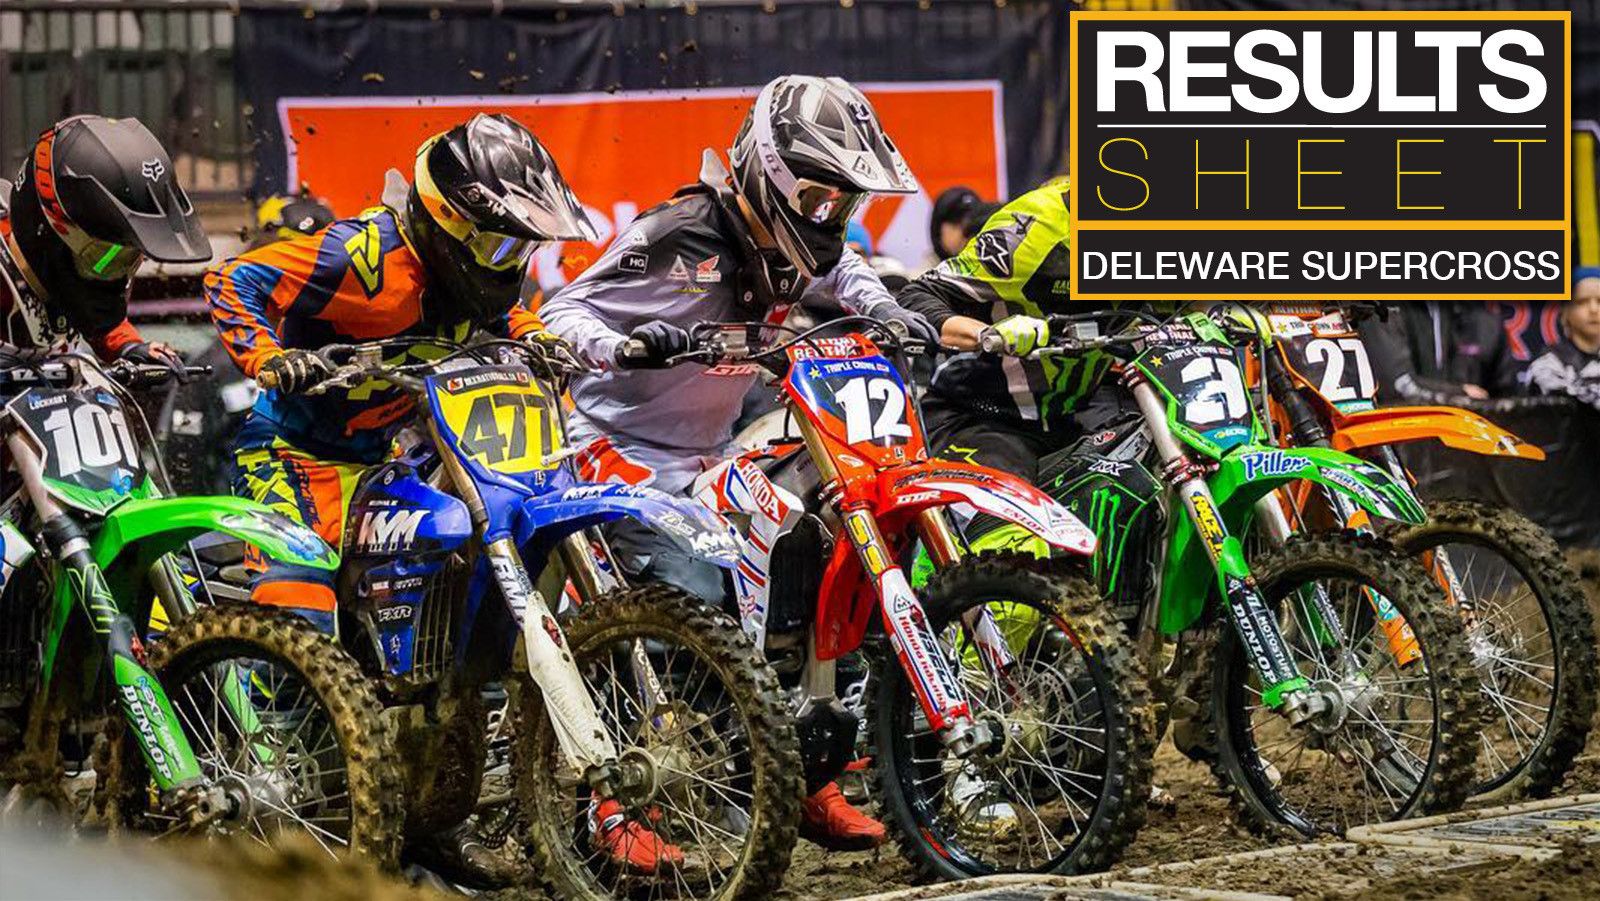 Results Sheet: 2018 Deleware Supercross